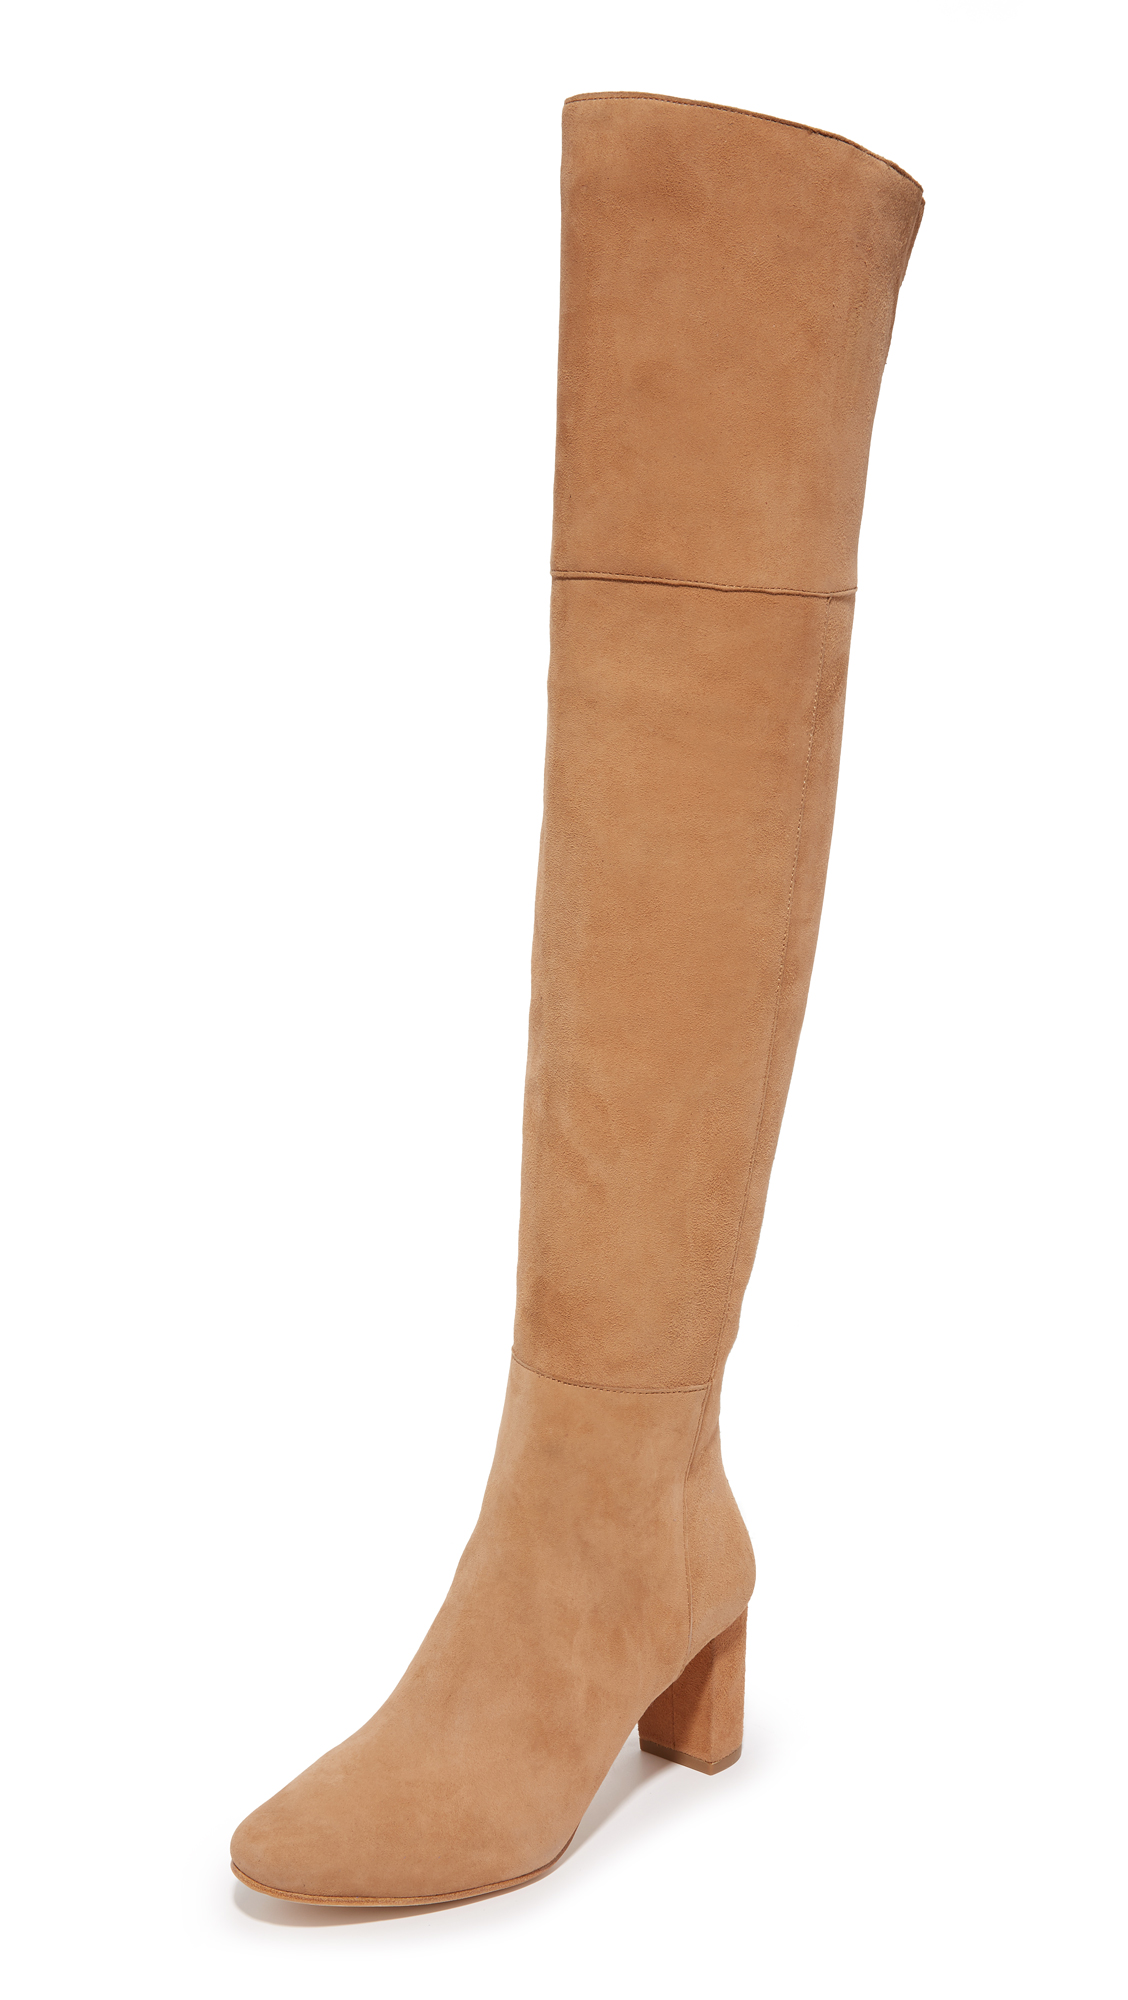 Loeffler Randall Brett Over The Knee Boots - Dark Camel